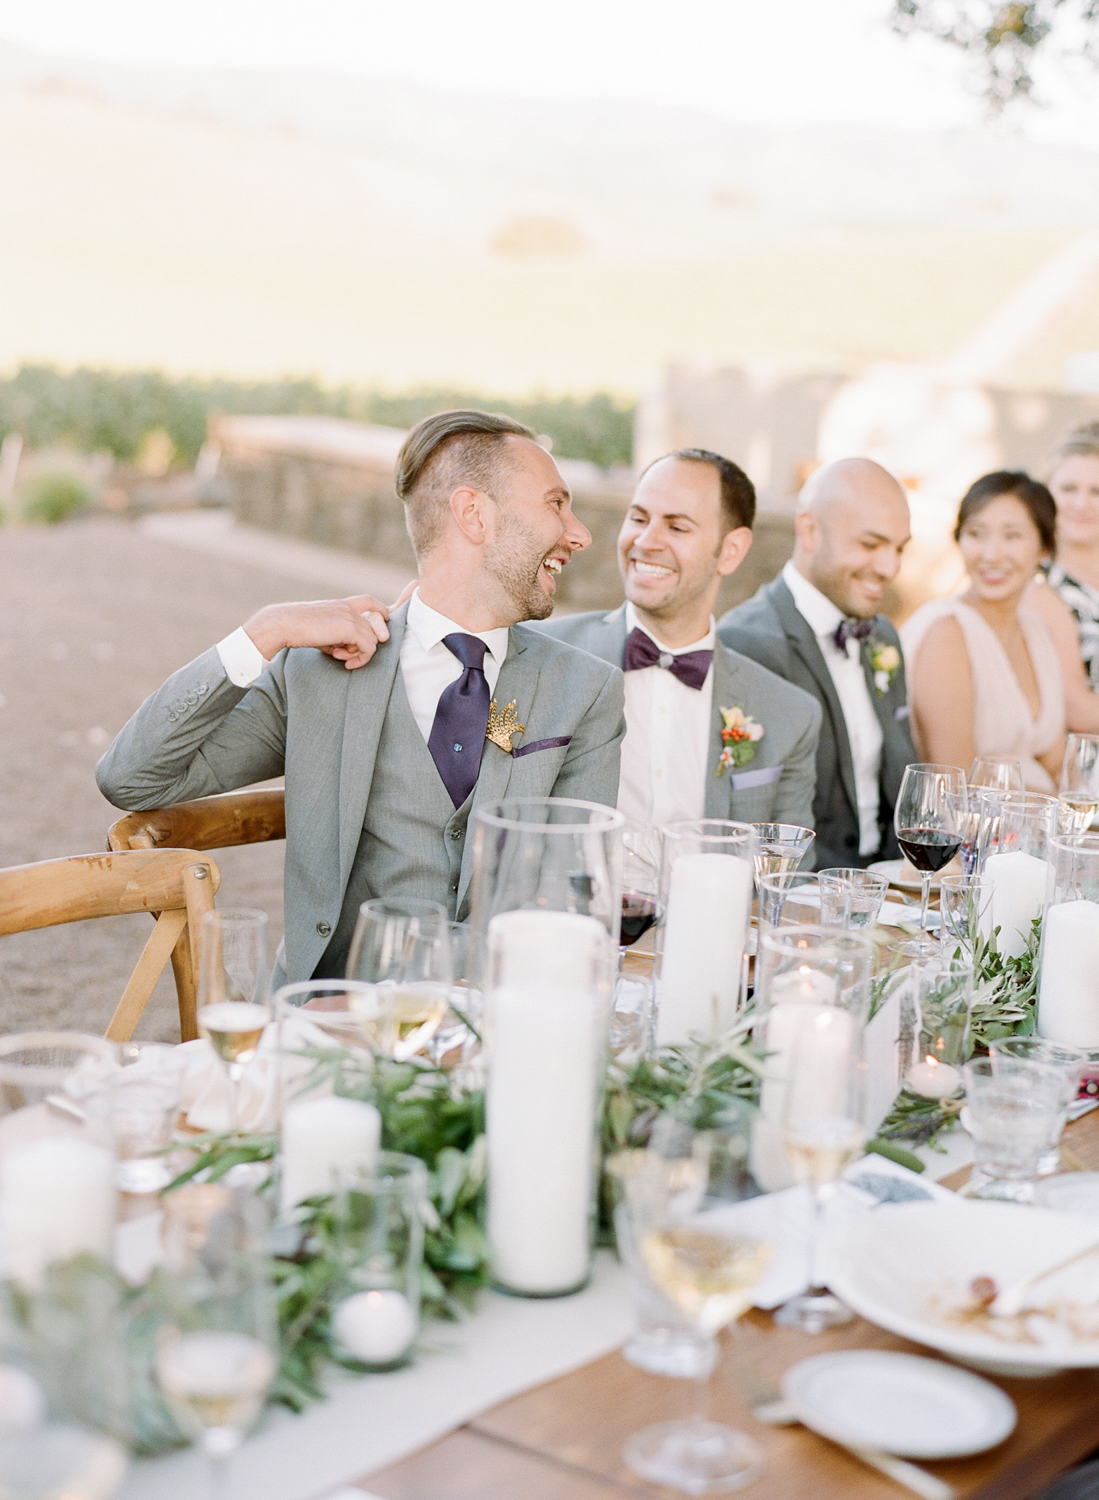 The grooms share a laugh during toasts at their Kunde Winery wedding reception; Sylvie Gil Photography